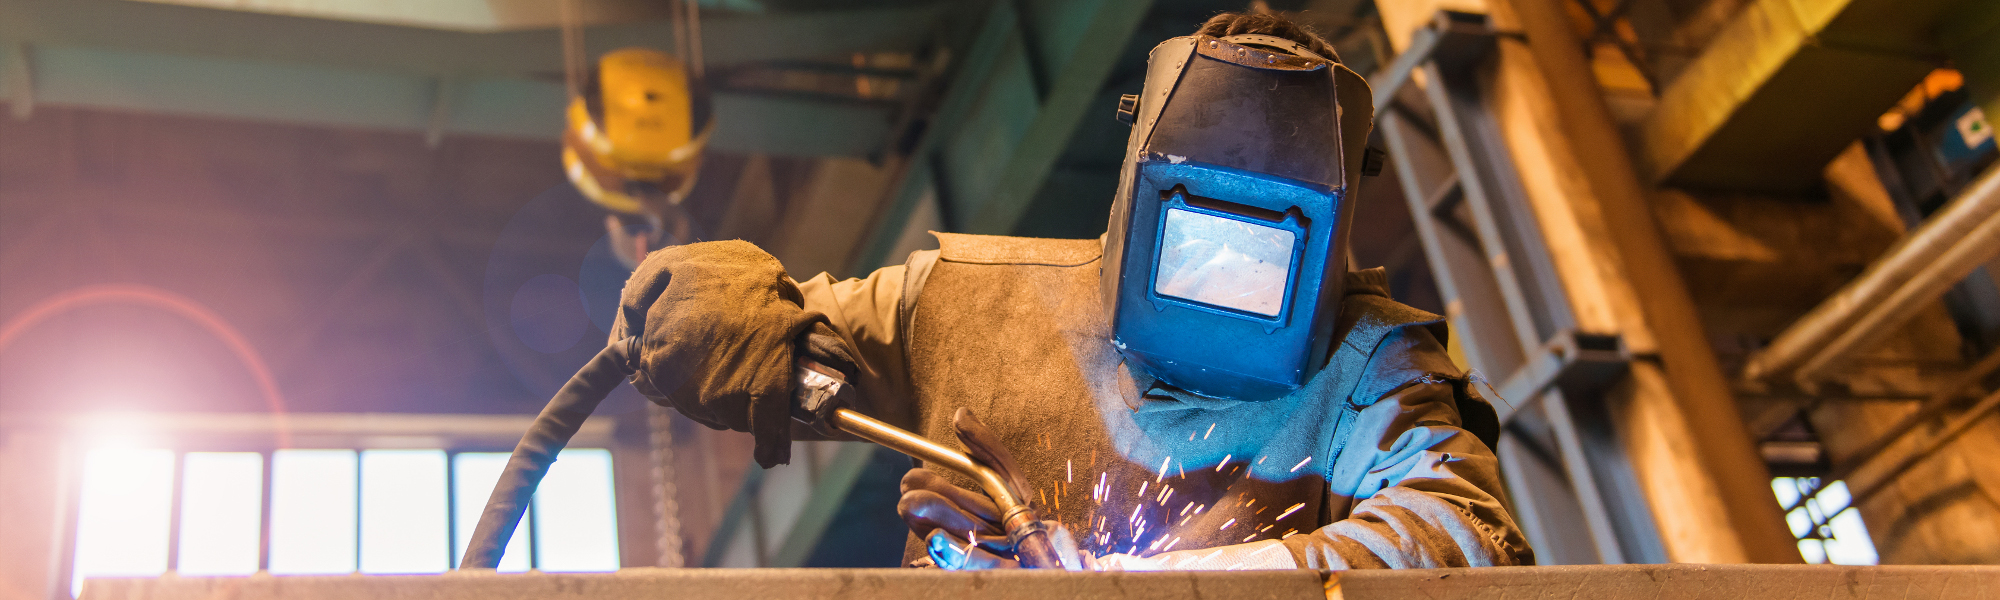 Welding Technology - Gas Metal Arc (MIG)  Background Pic